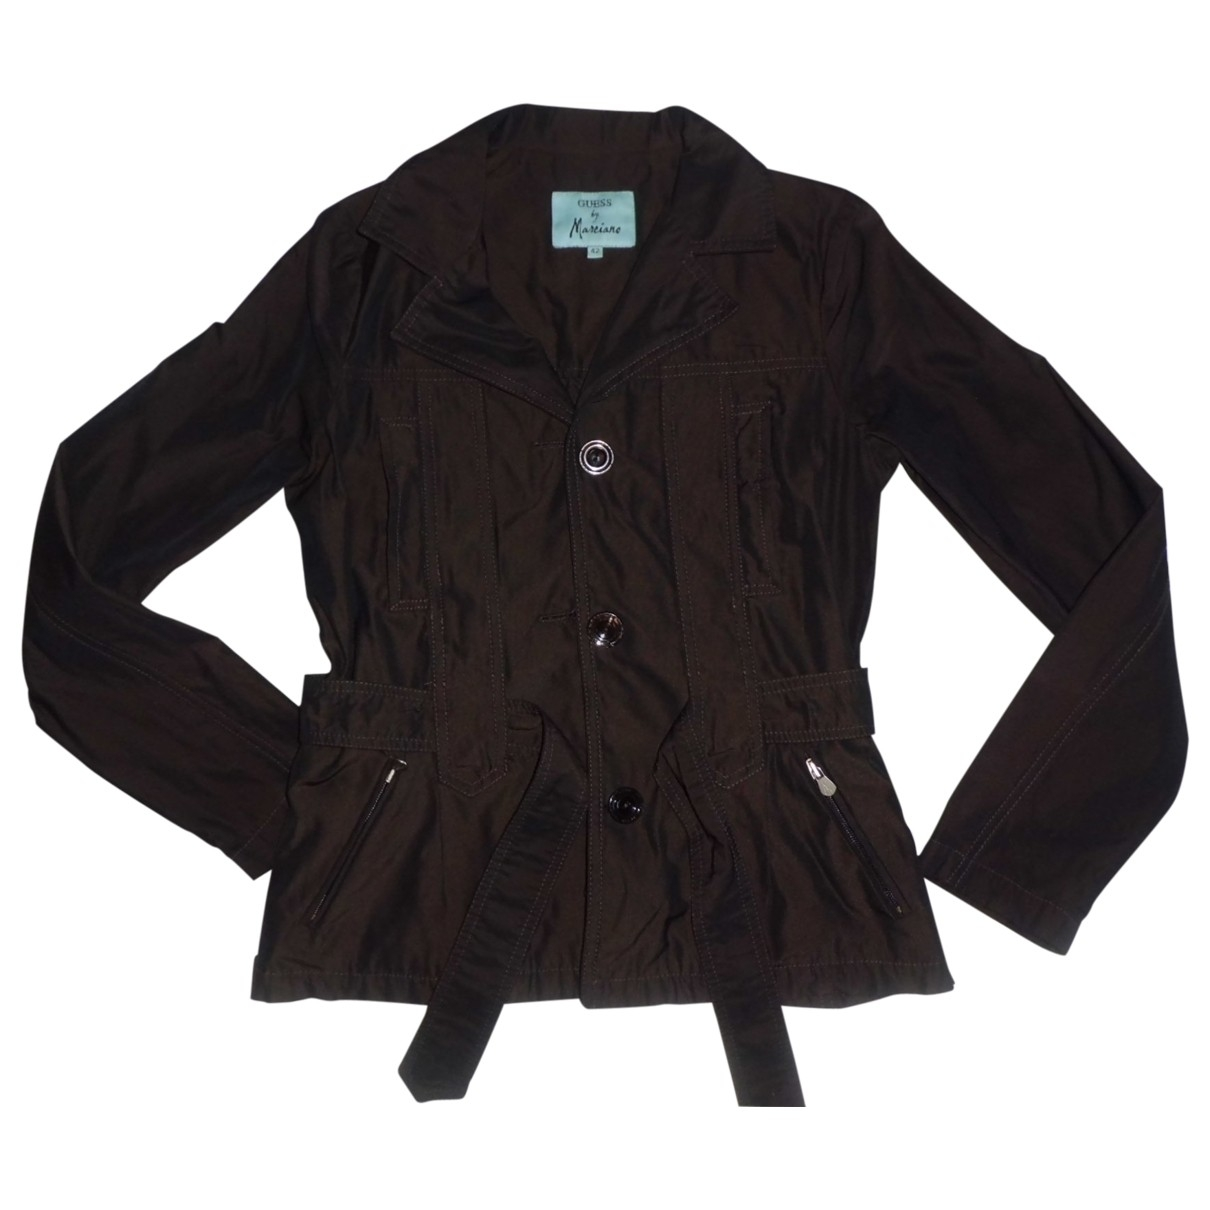 Guess \N Jacke in  Braun Polyester